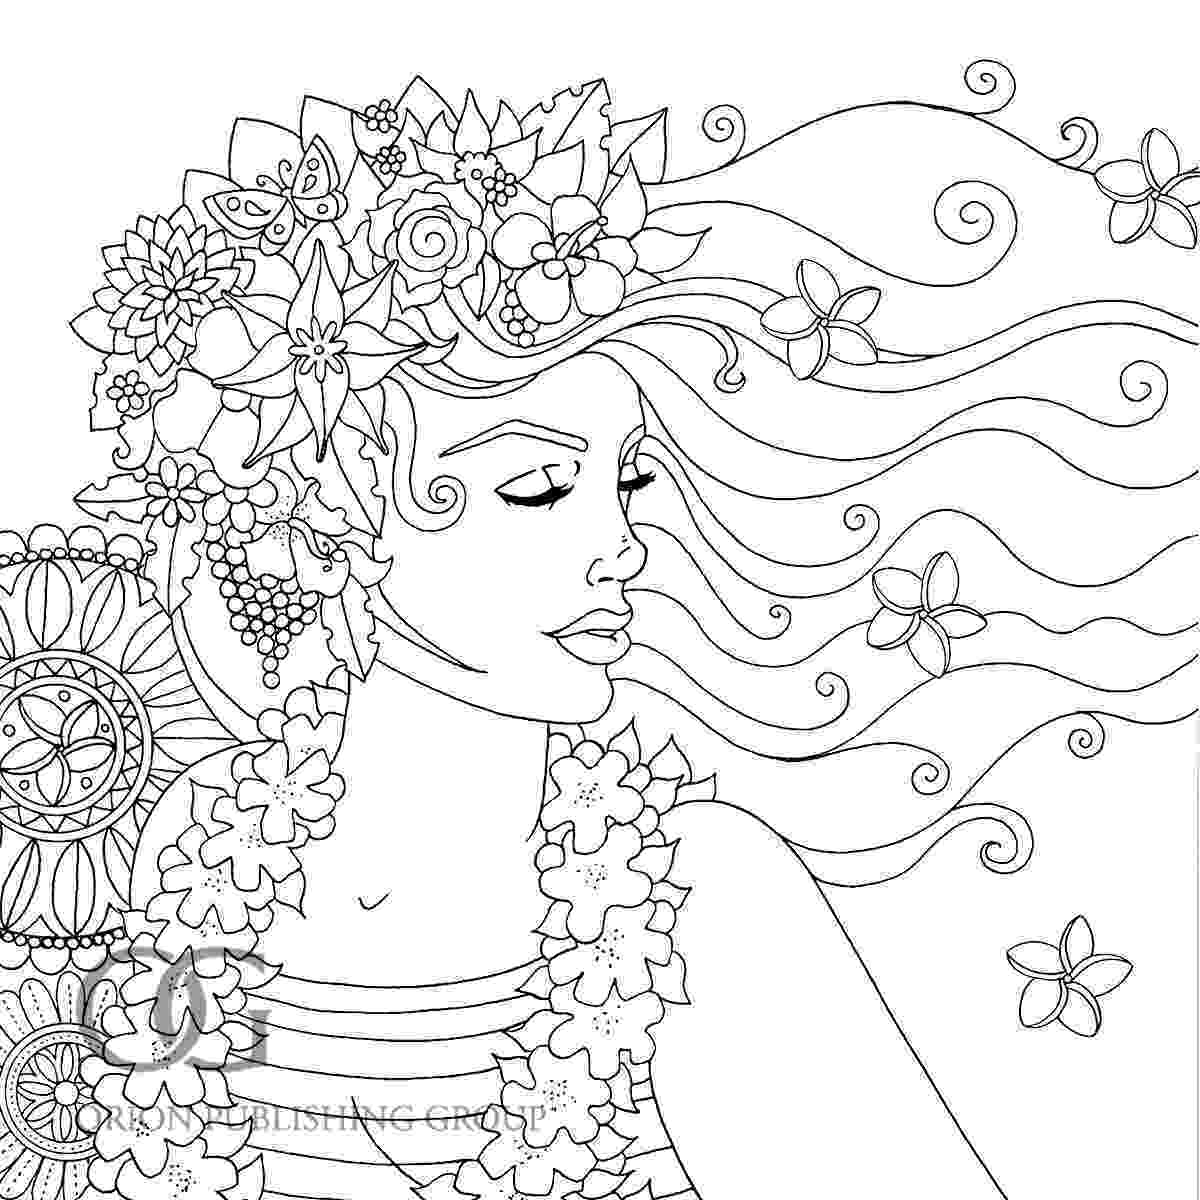 mindfulness colouring pages anastasia catris colour me mindful tropical previews colouring pages mindfulness